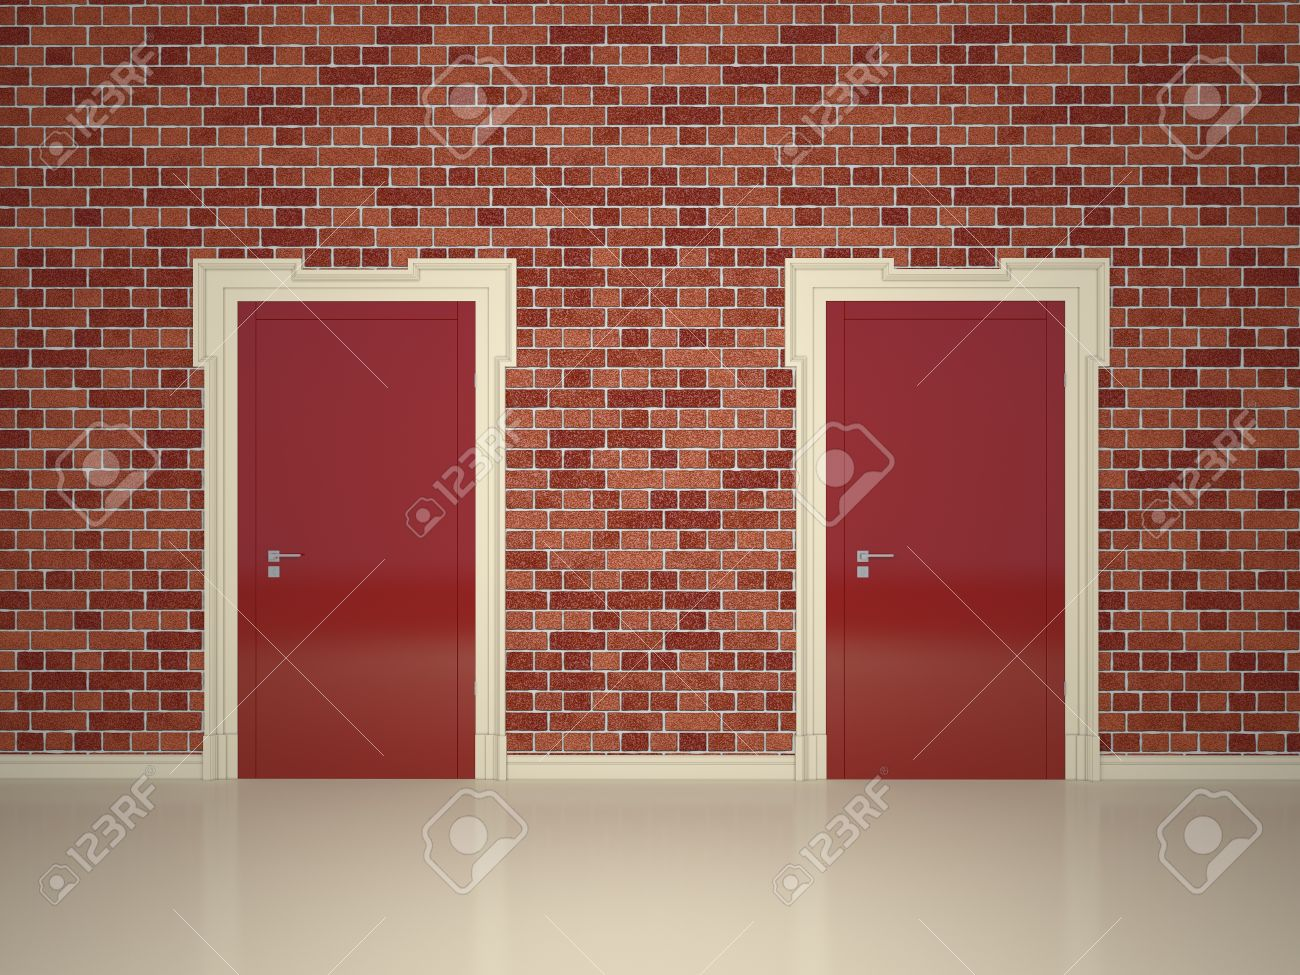 Stylish red two doors on the front of a brick wall Stock Photo - 16172981 & Stylish Red Two Doors On The Front Of A Brick Wall Stock Photo ...